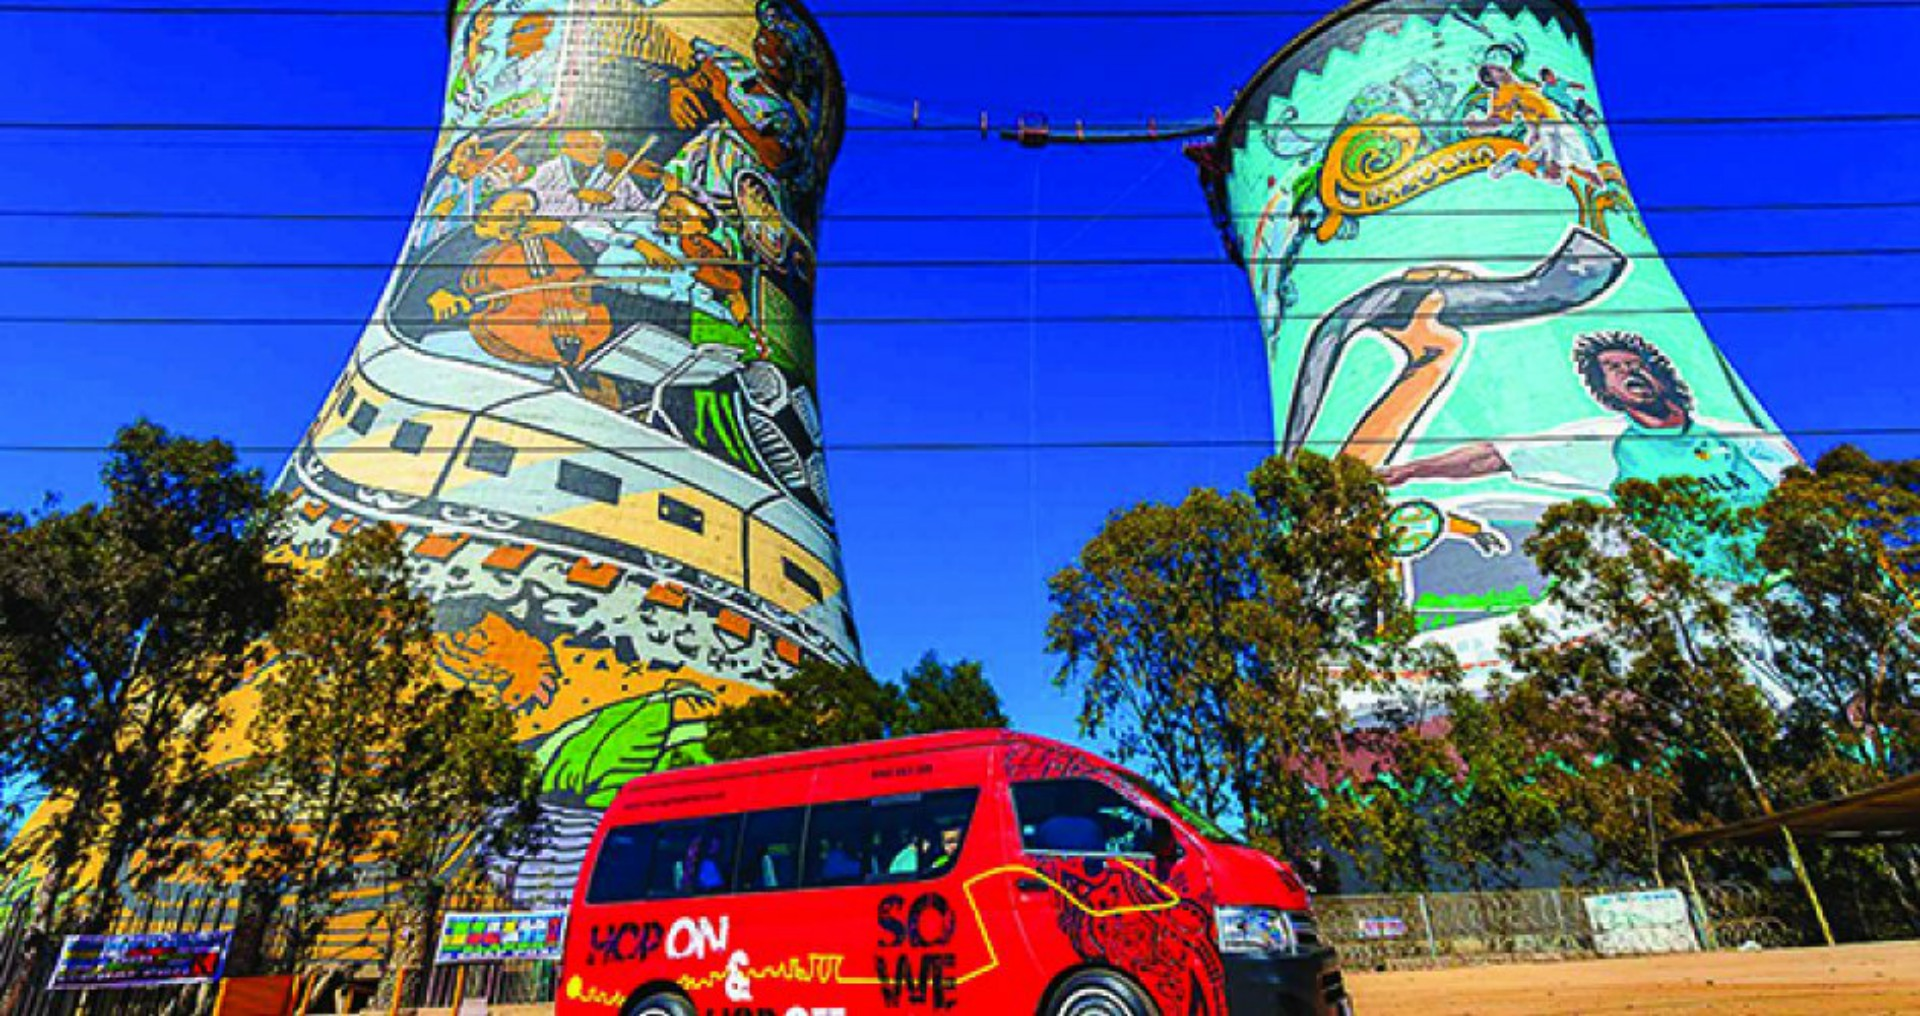 soweto_towers